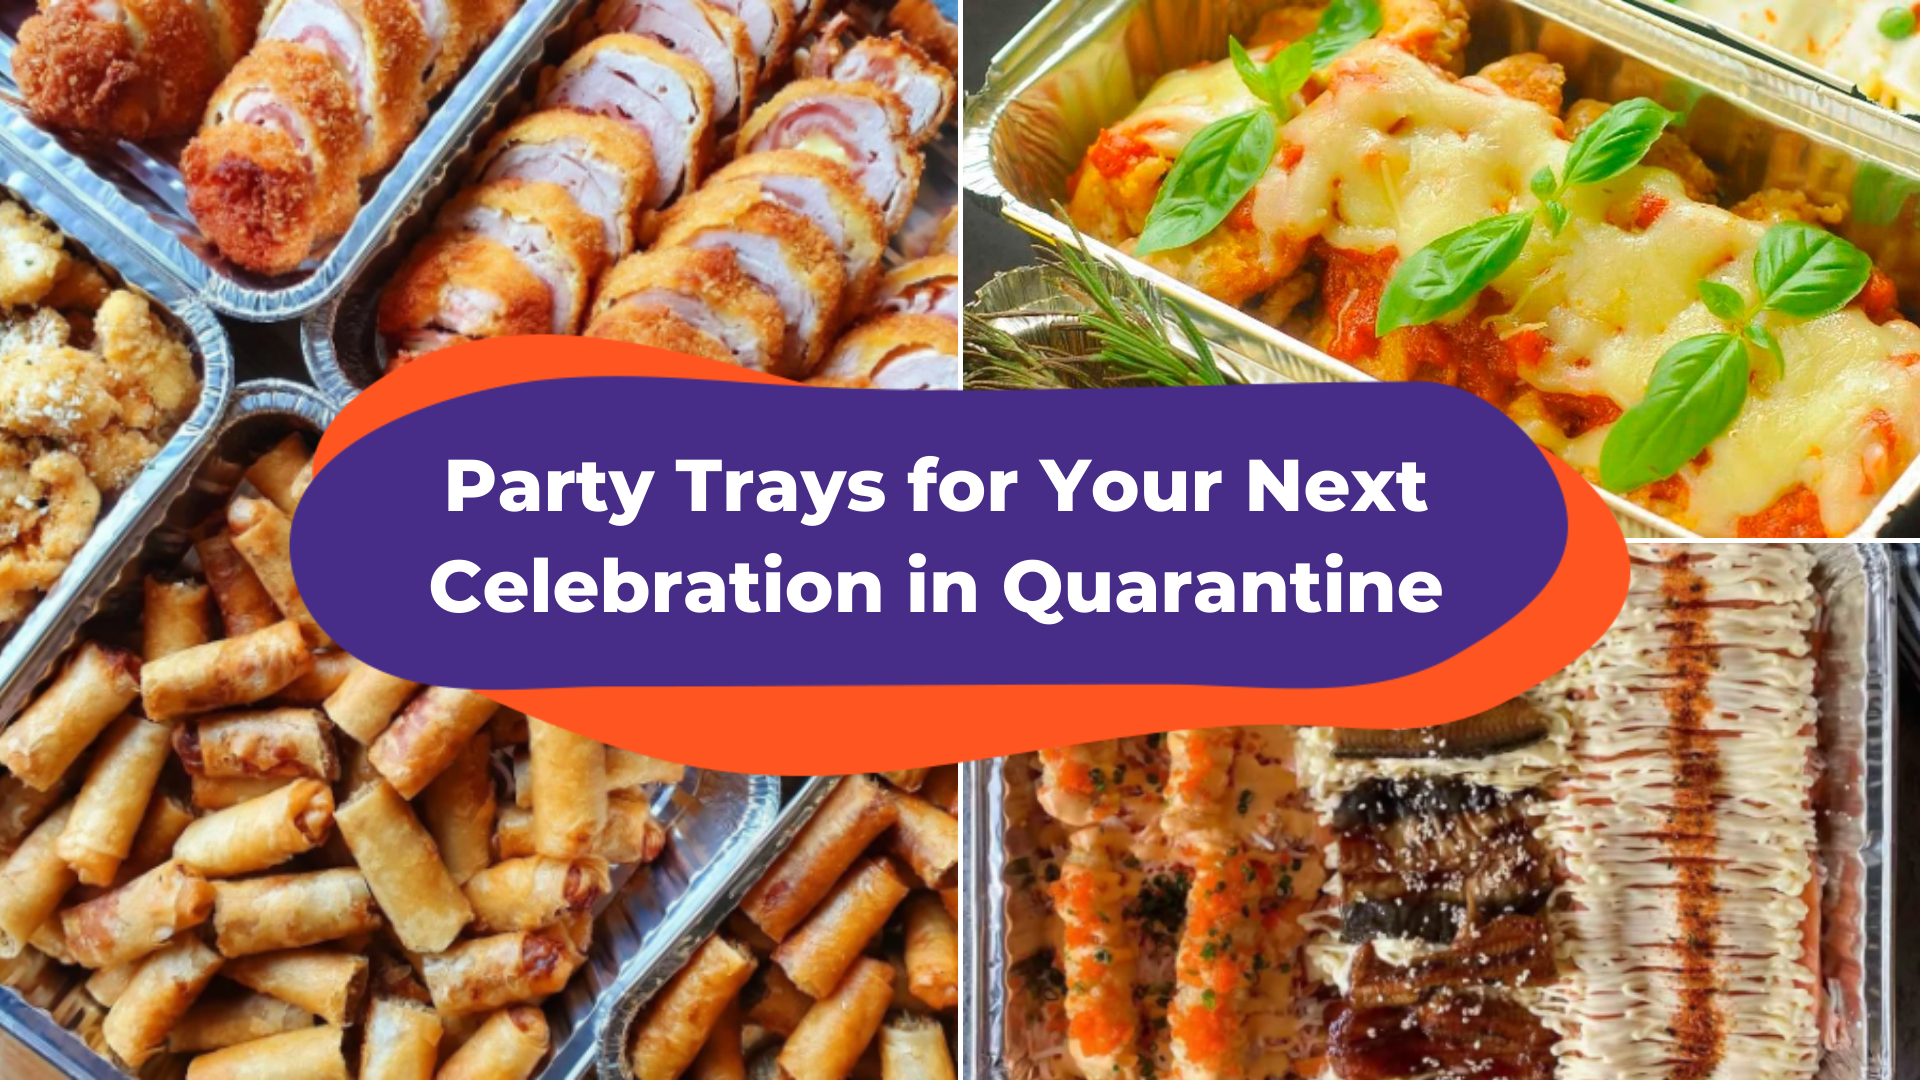 20 Party Trays You Can Order For Delivery On Klook For Any Celebration In Quarantine Klook Travel Blog